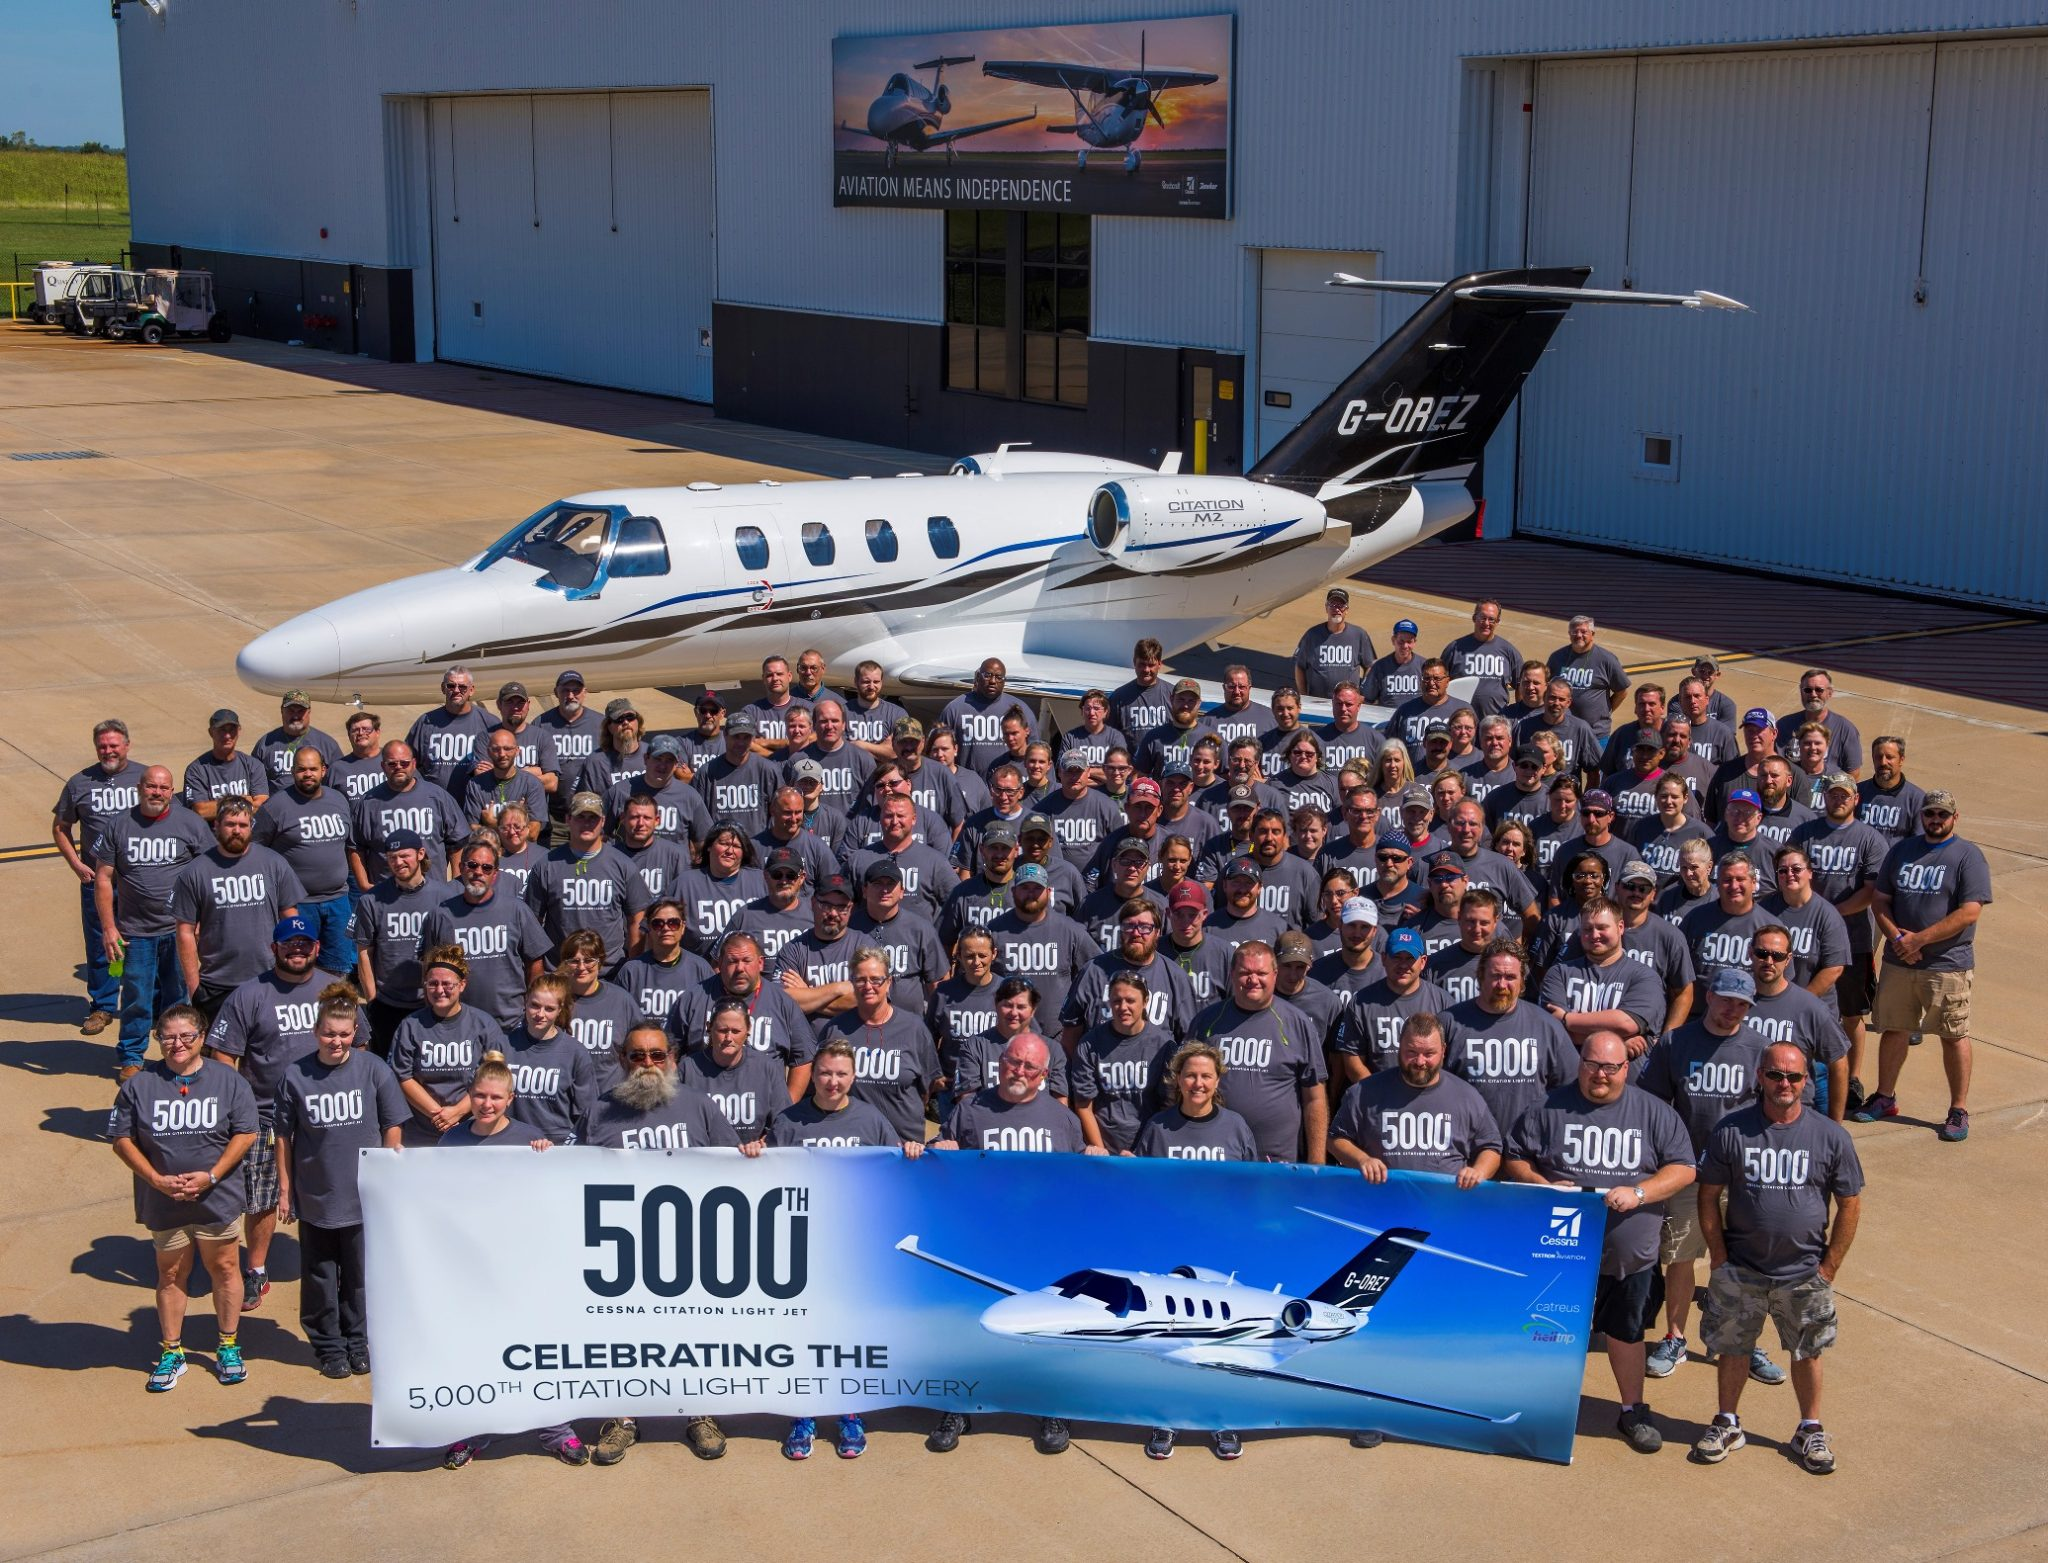 Cessna celebrates segment leadership with 5,000th Citation light jet delivery